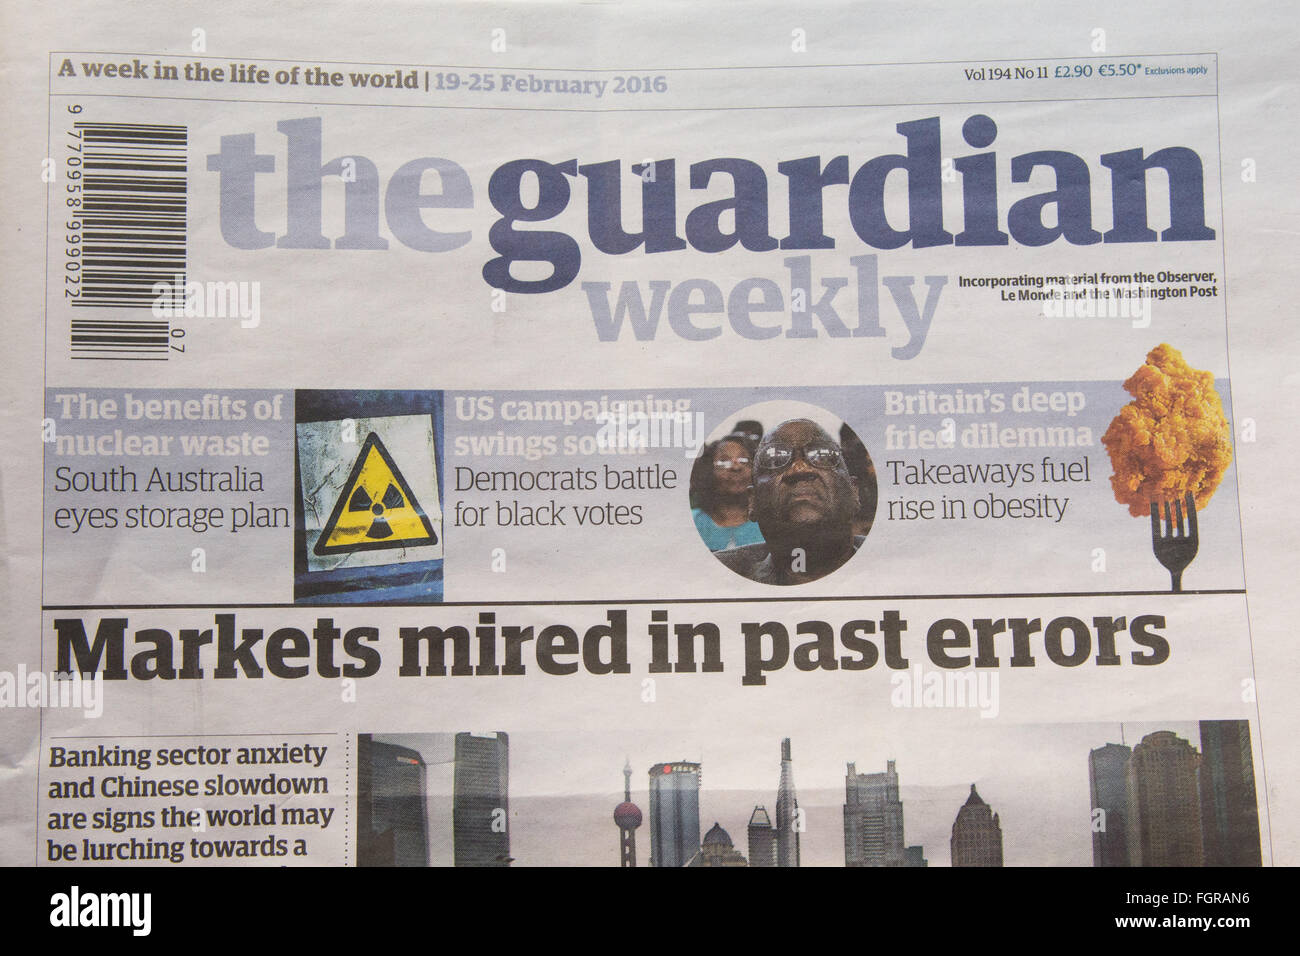 Le guardian weekly newspaper Photo Stock